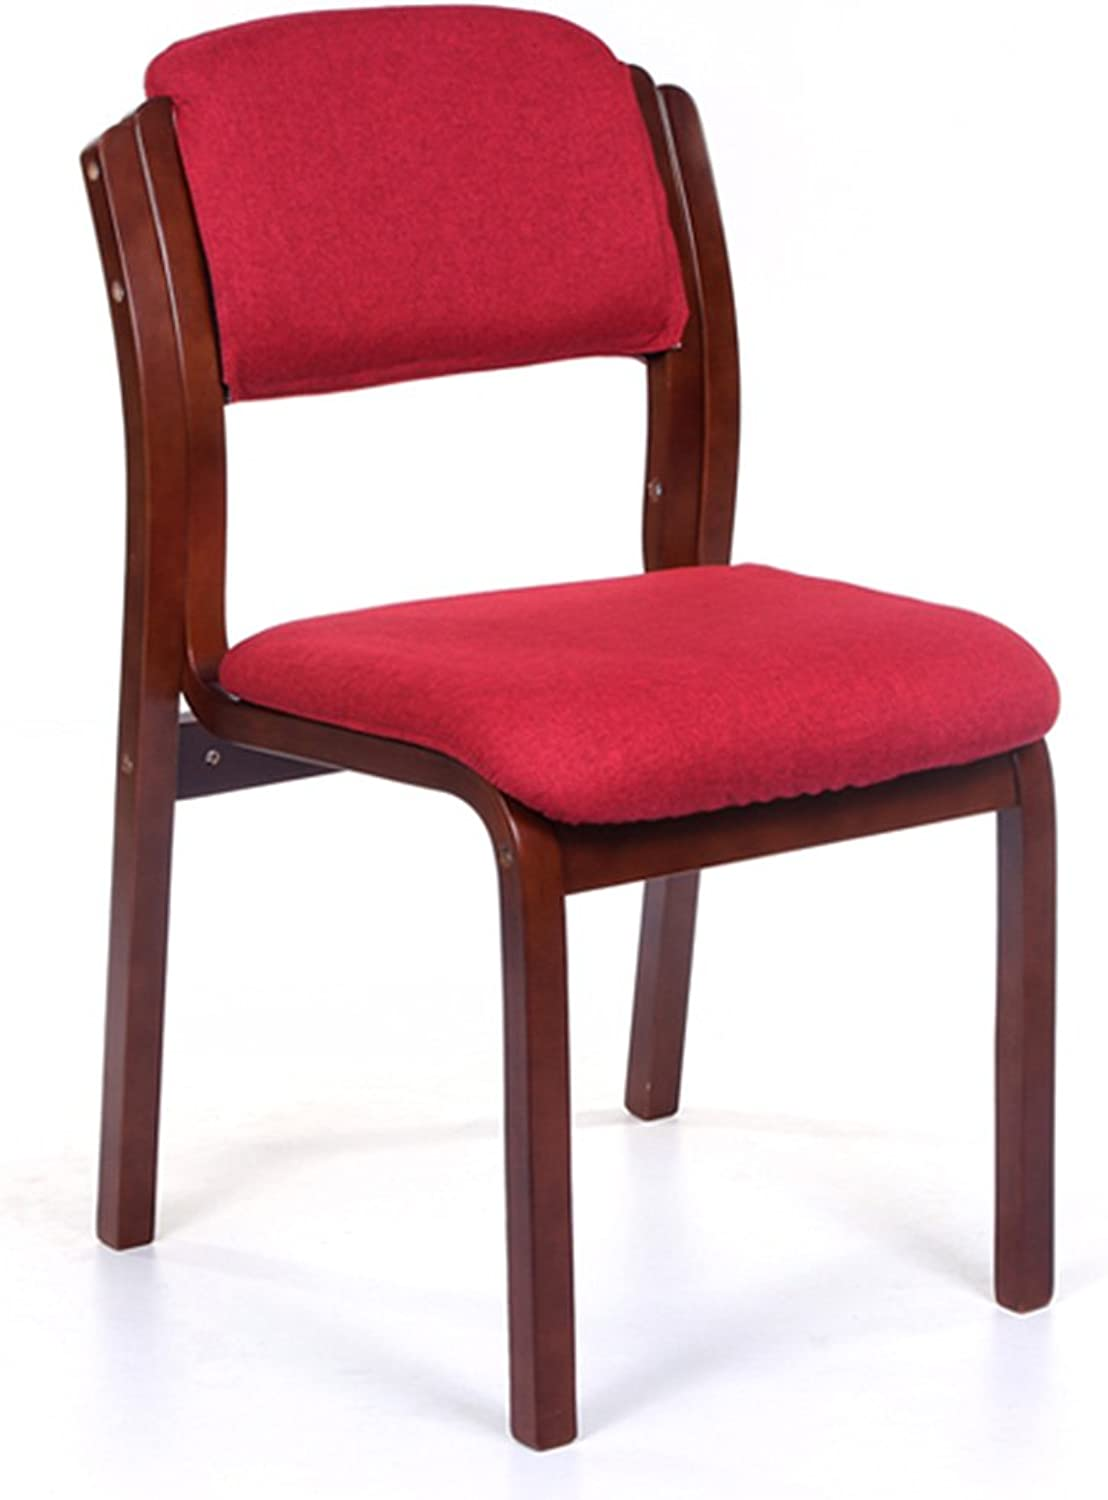 Wooden Chair,Home Cloth Cafe Restaurant Hotel Desk Backrest Chair (Brown Frame red Linen seat Cover)